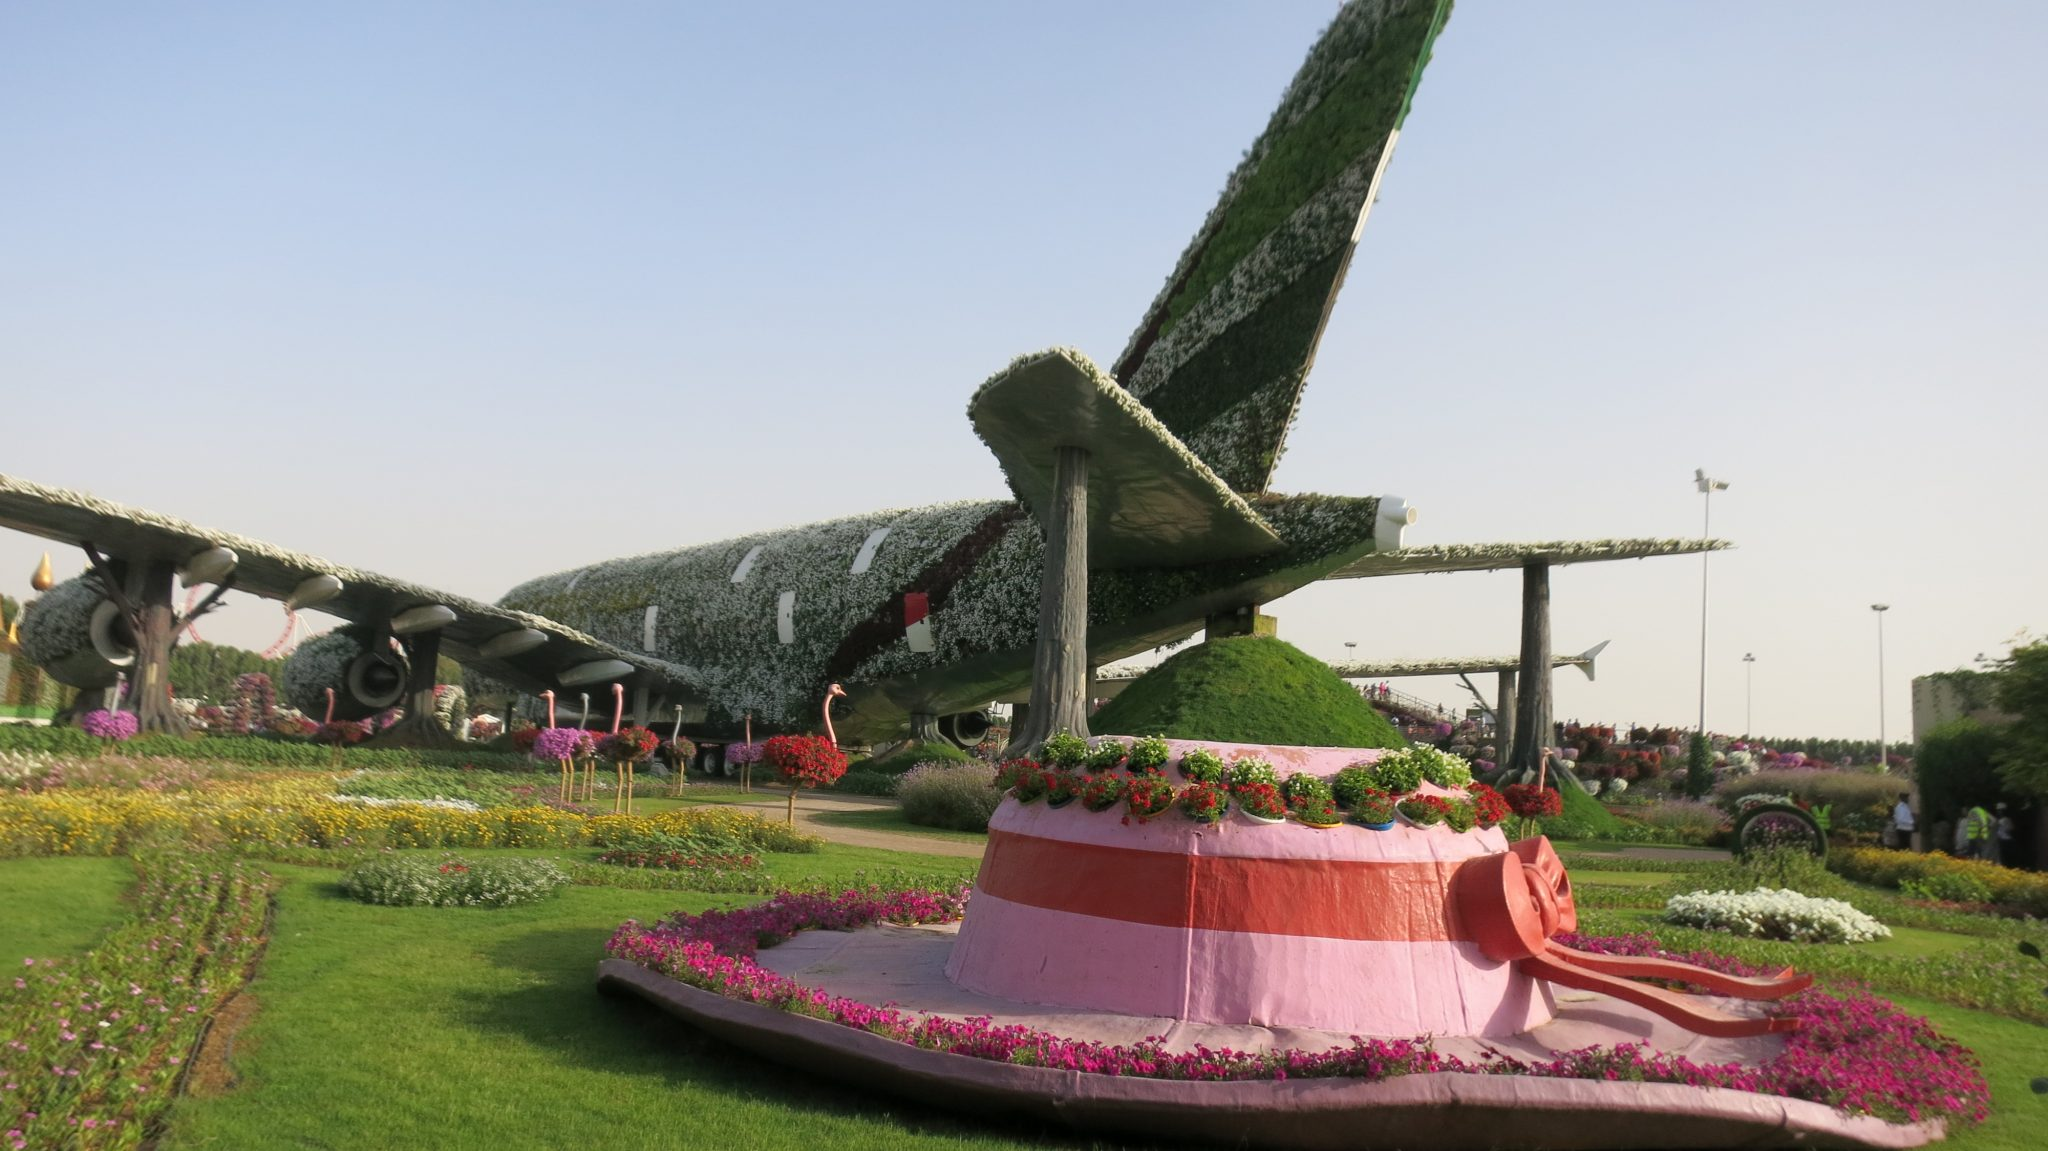 The A380 with its row of ostriches and a hat, in Dubai Miracle Garden.